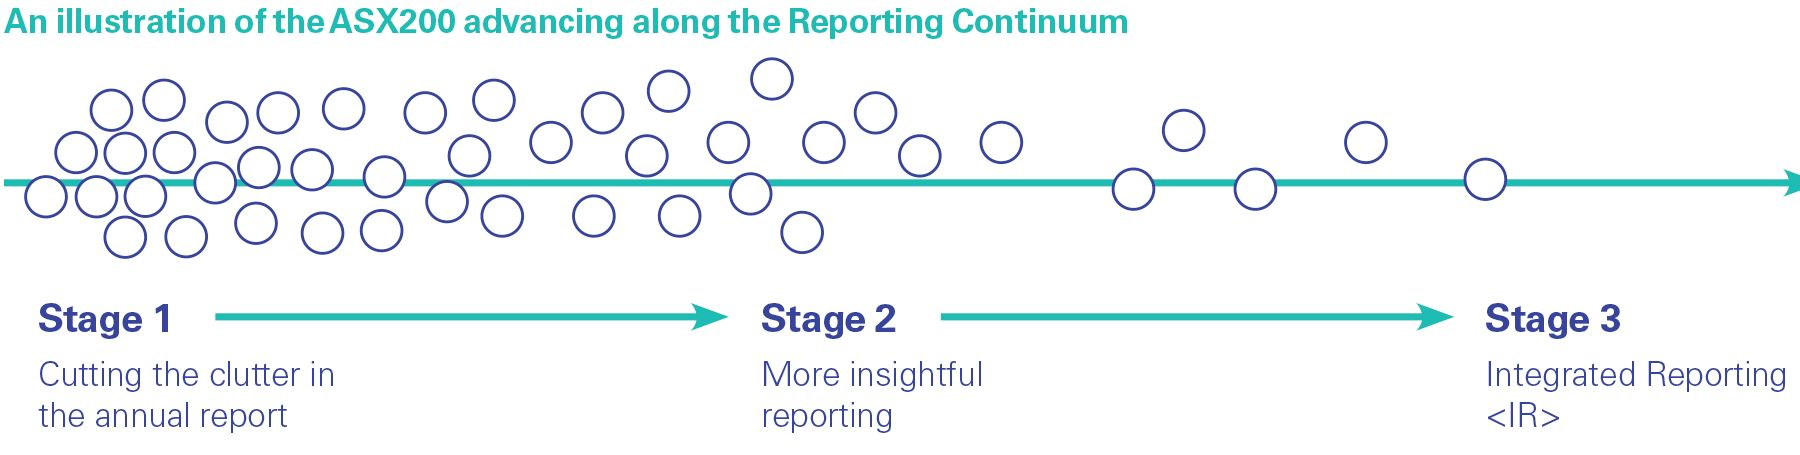 Illustration  of ASX200 advancing along reporting continuum